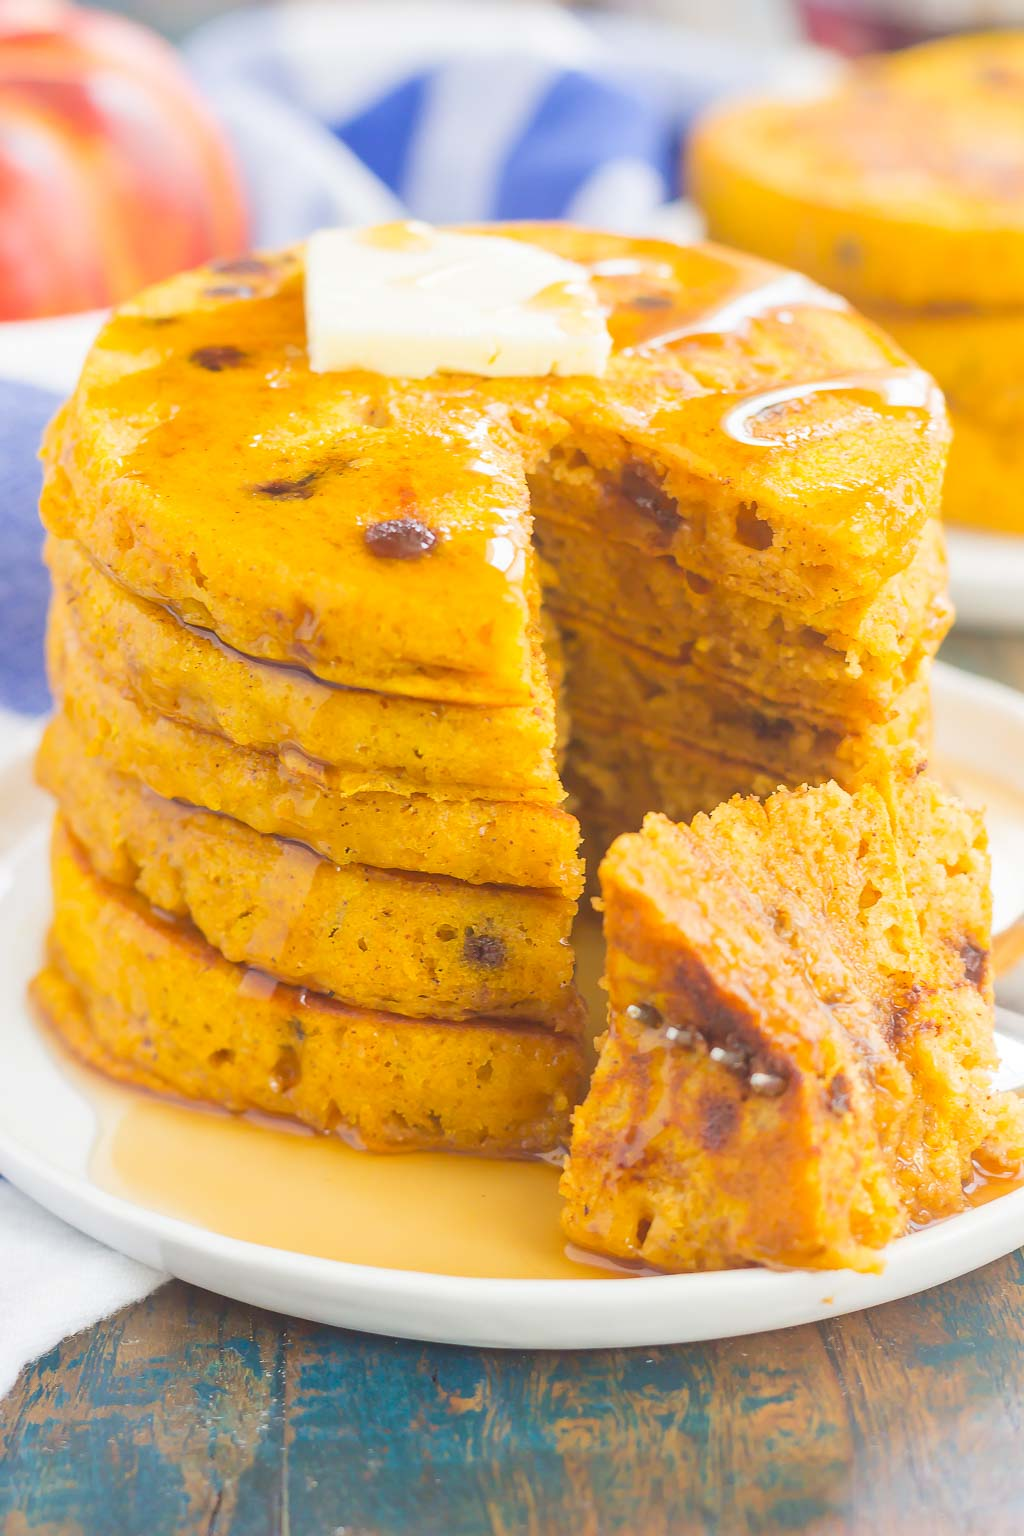 These chocolate chip pumpkin pancakes make a delicious and cozy breakfast for fall. Filled with sweet pumpkin and overflowing with chocolate chips, these simple pancakes are soft, fluffy, and so easy to make! # pancakes # pumpkin pancakes #chocolatechippancakes # pancake recipe # breakfast